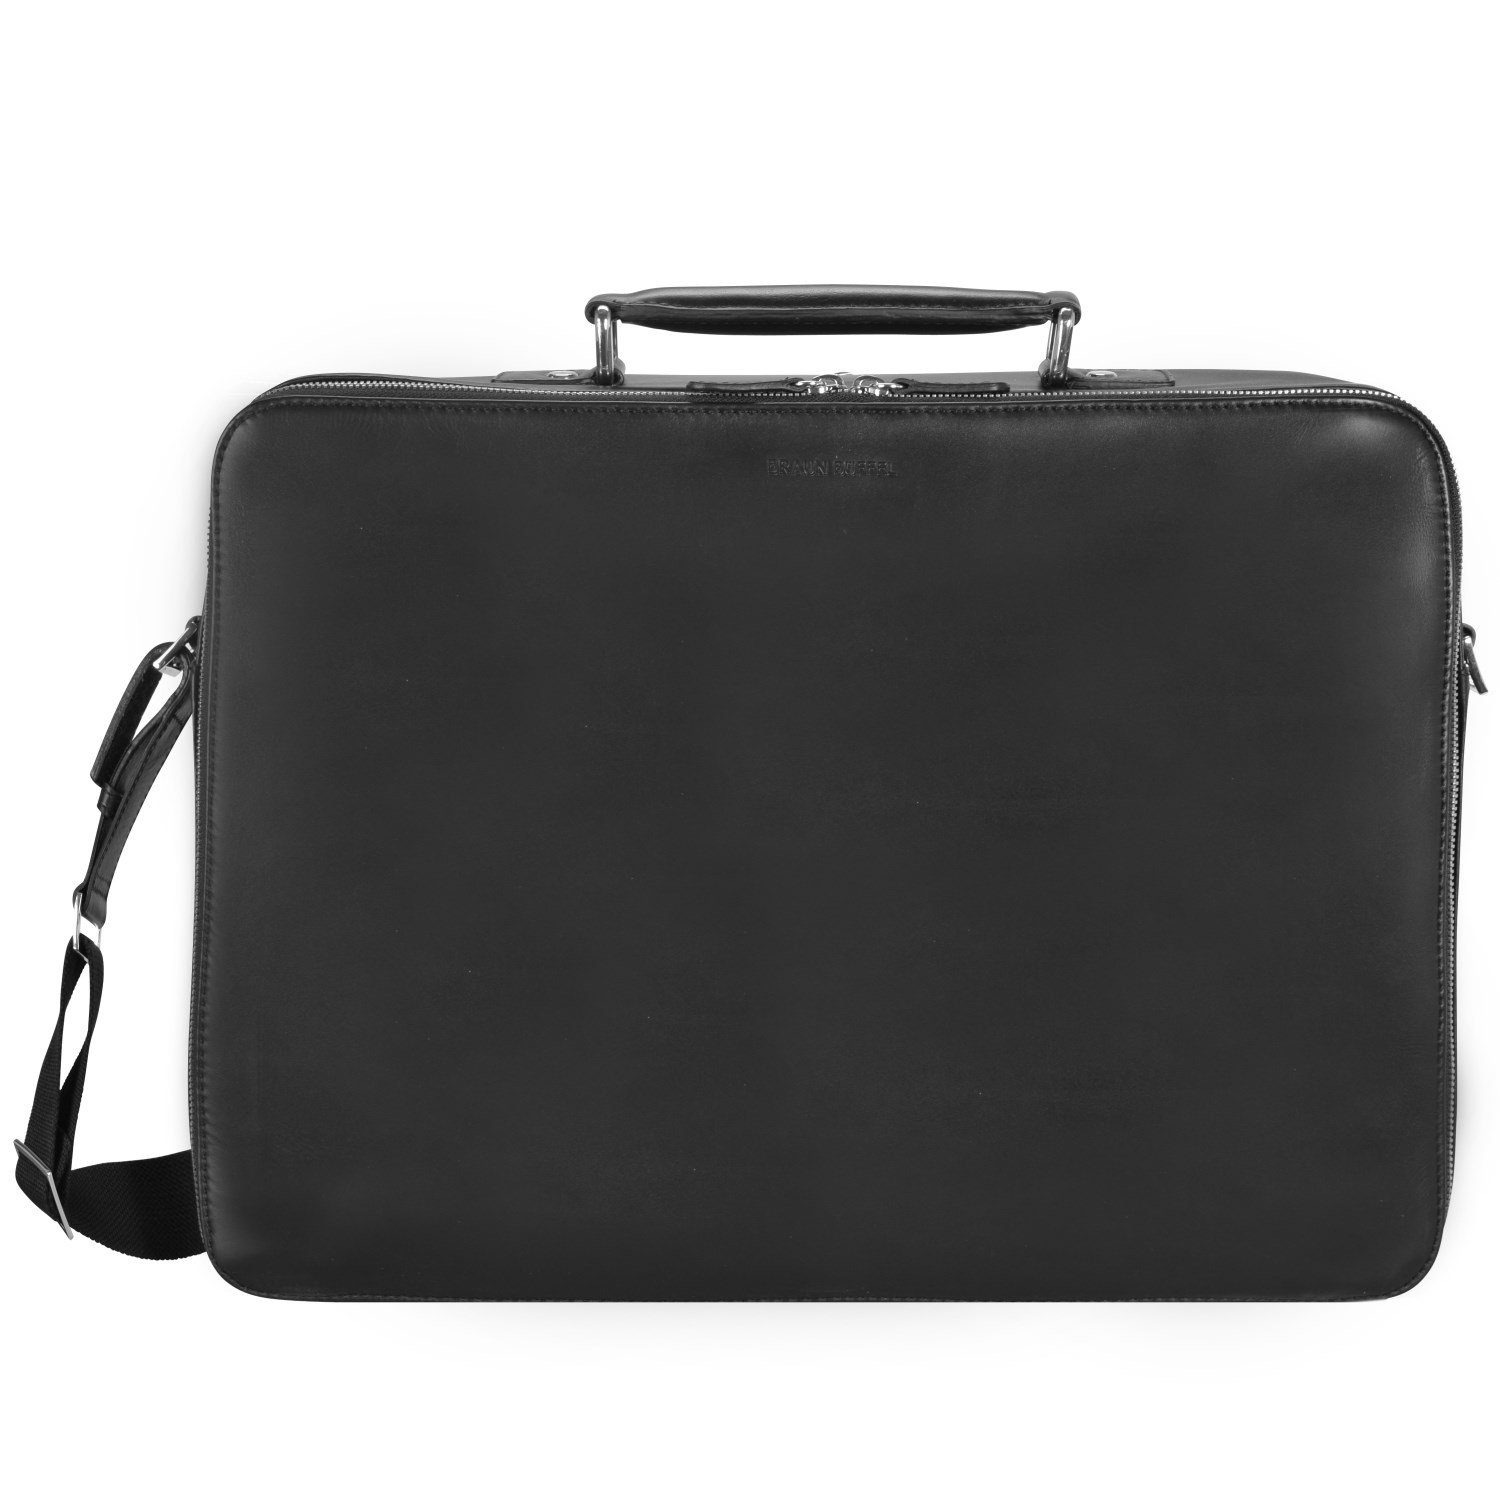 Braun Büffel Oxford Businesstasche L Leder 42 cm Laptopfach